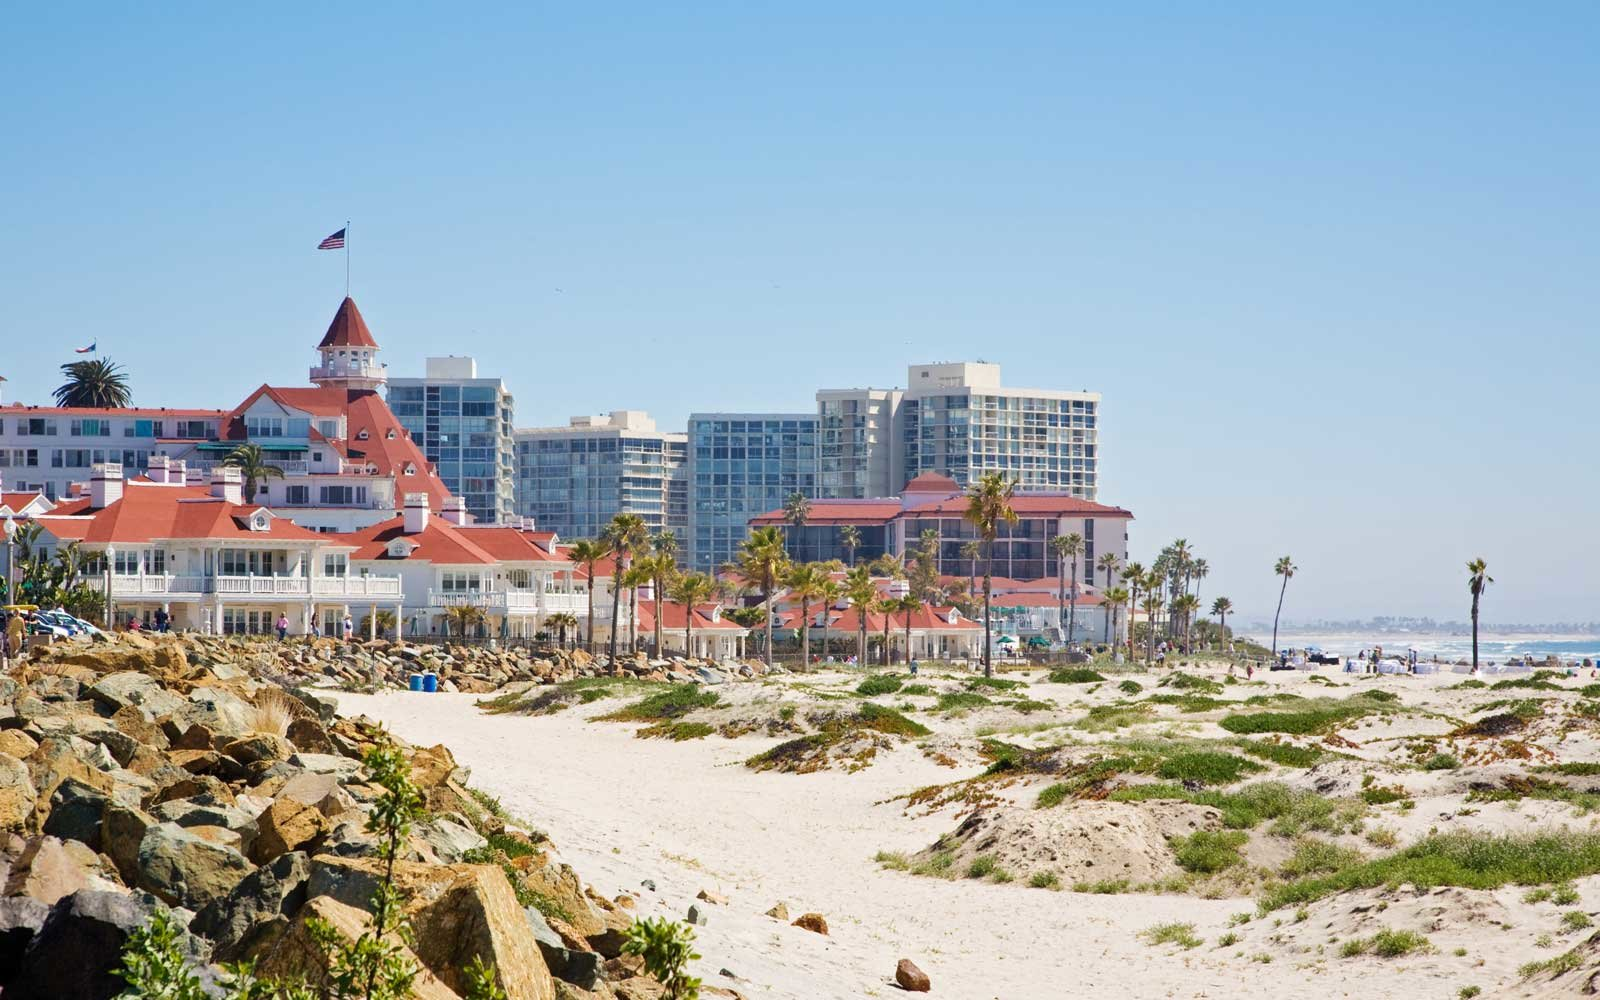 Sandy beach on Coronado Island, San Diego, California